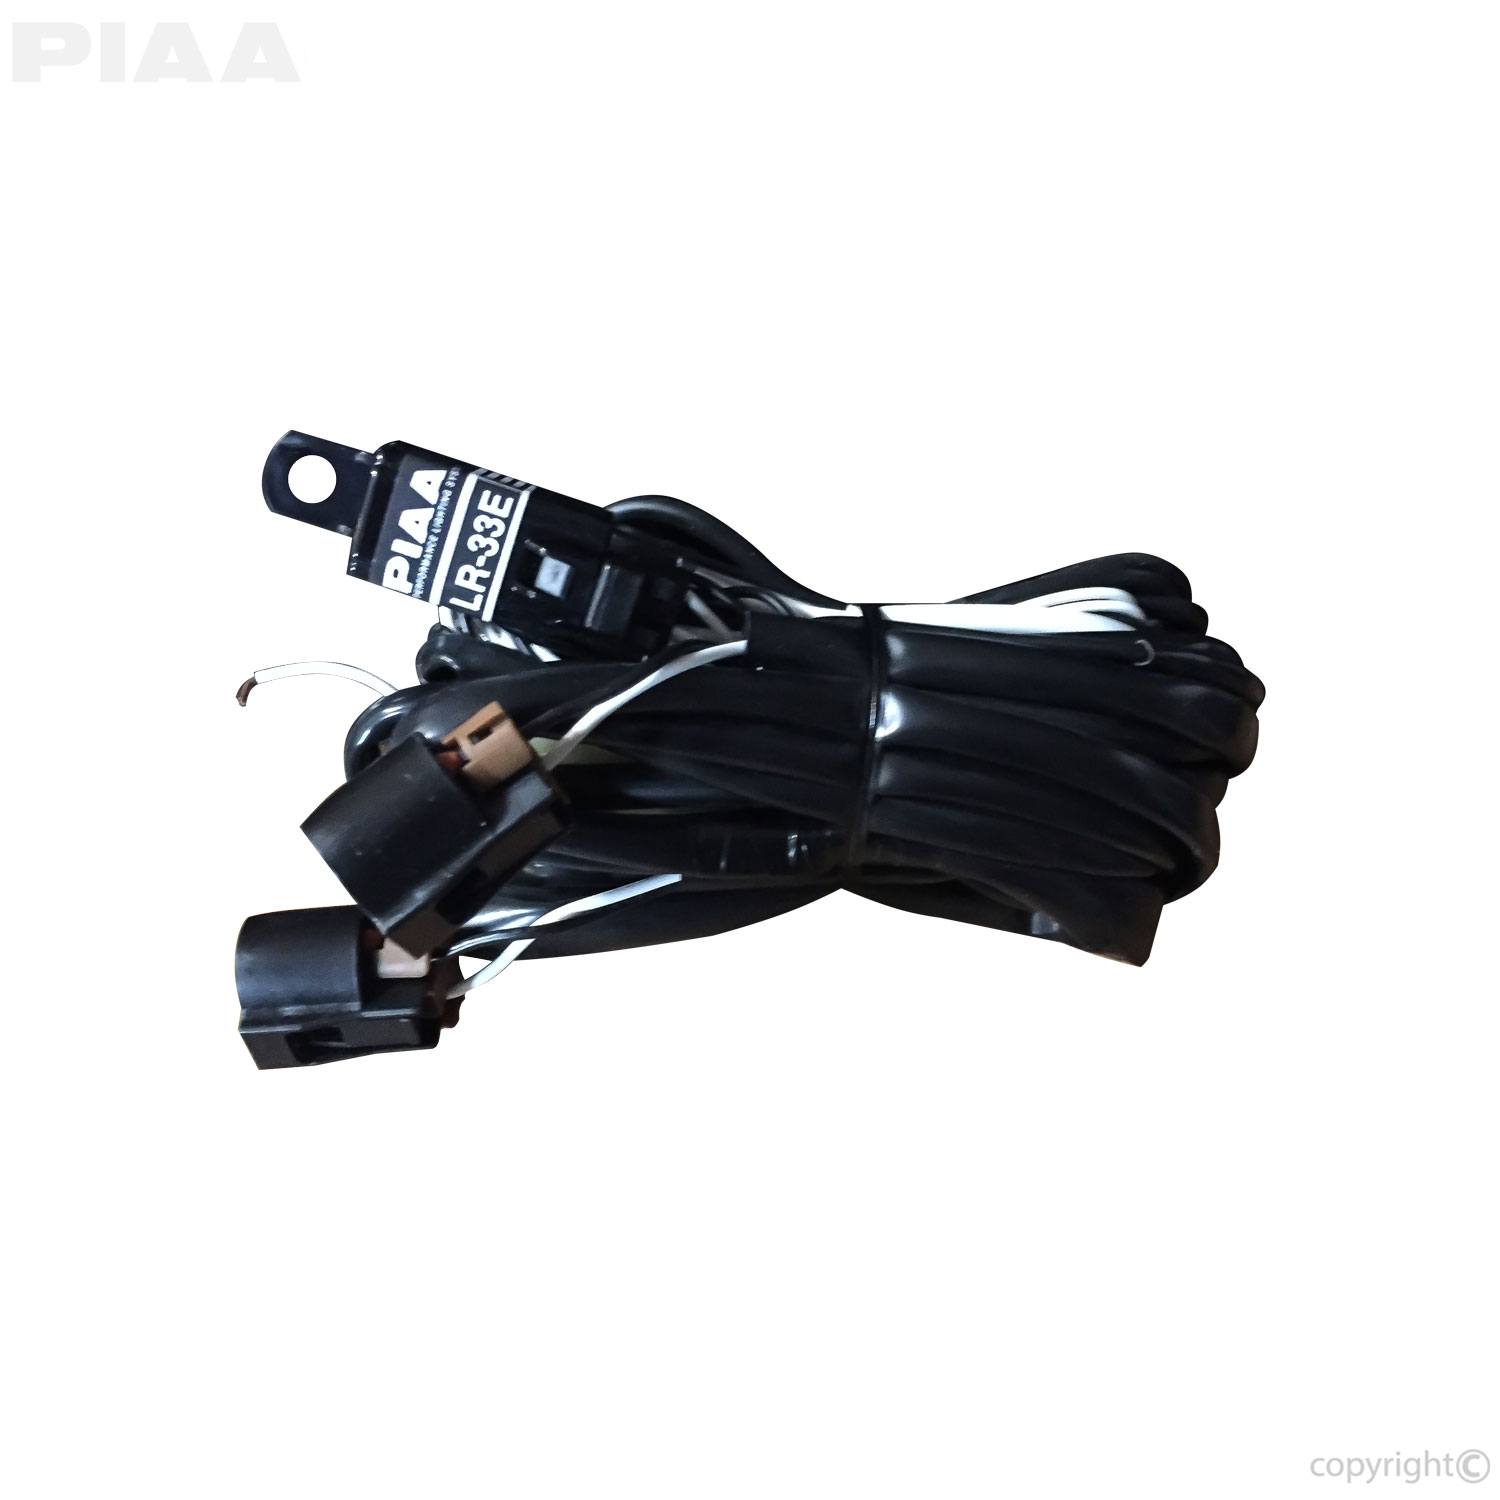 piaa piaa wiring harness for 410 series driving light kit, for  piaa piaa wiring harness for 410 series driving light kit, for 9005 (hb3) bulbs only 34087